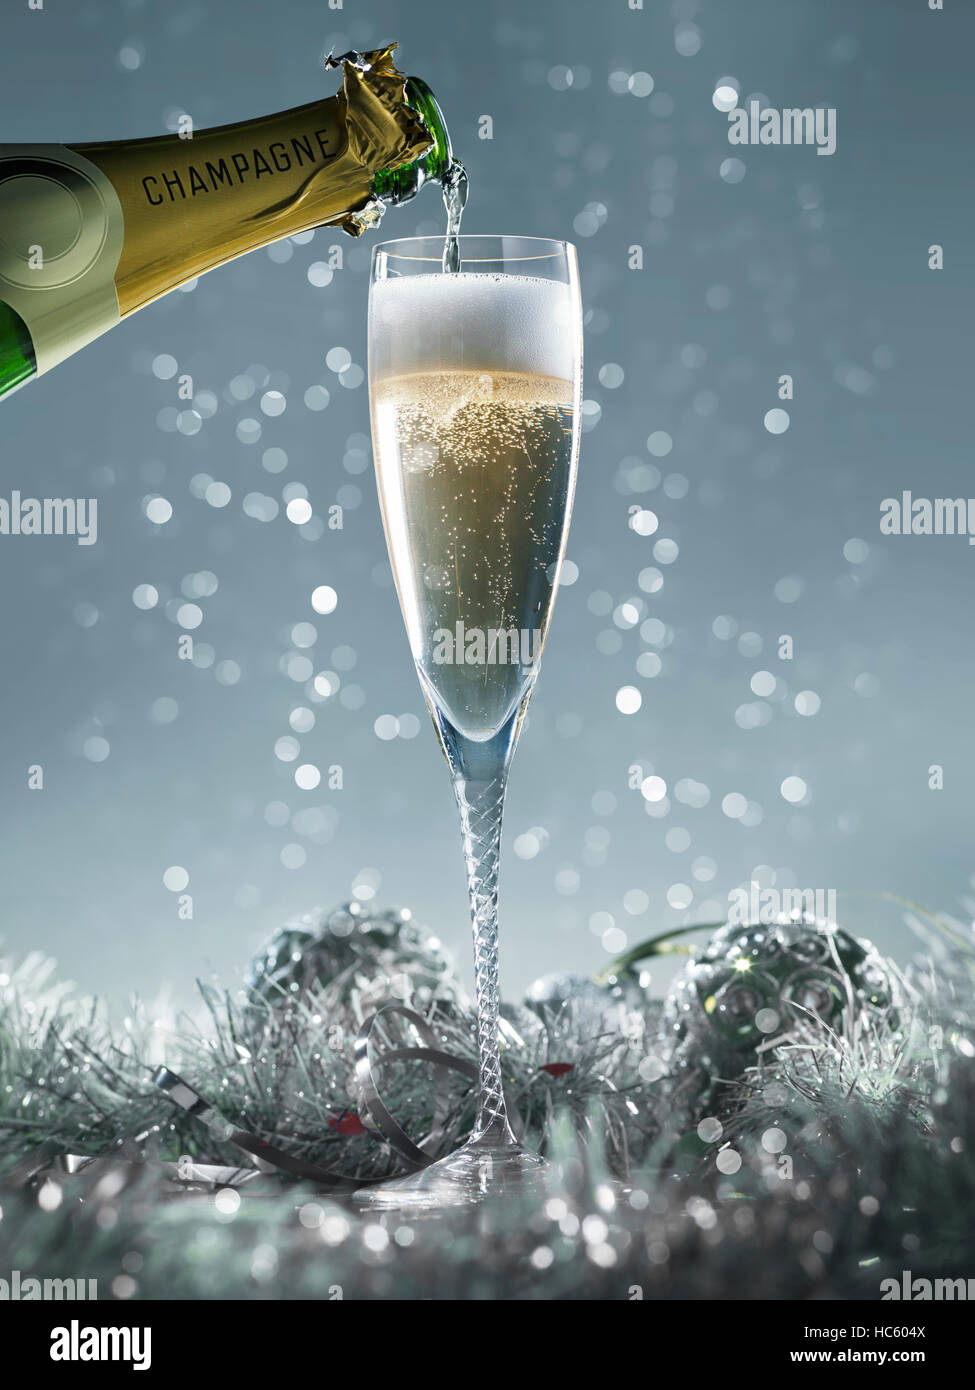 pouring champagne into the glass on a blue christmas background Stock Photo